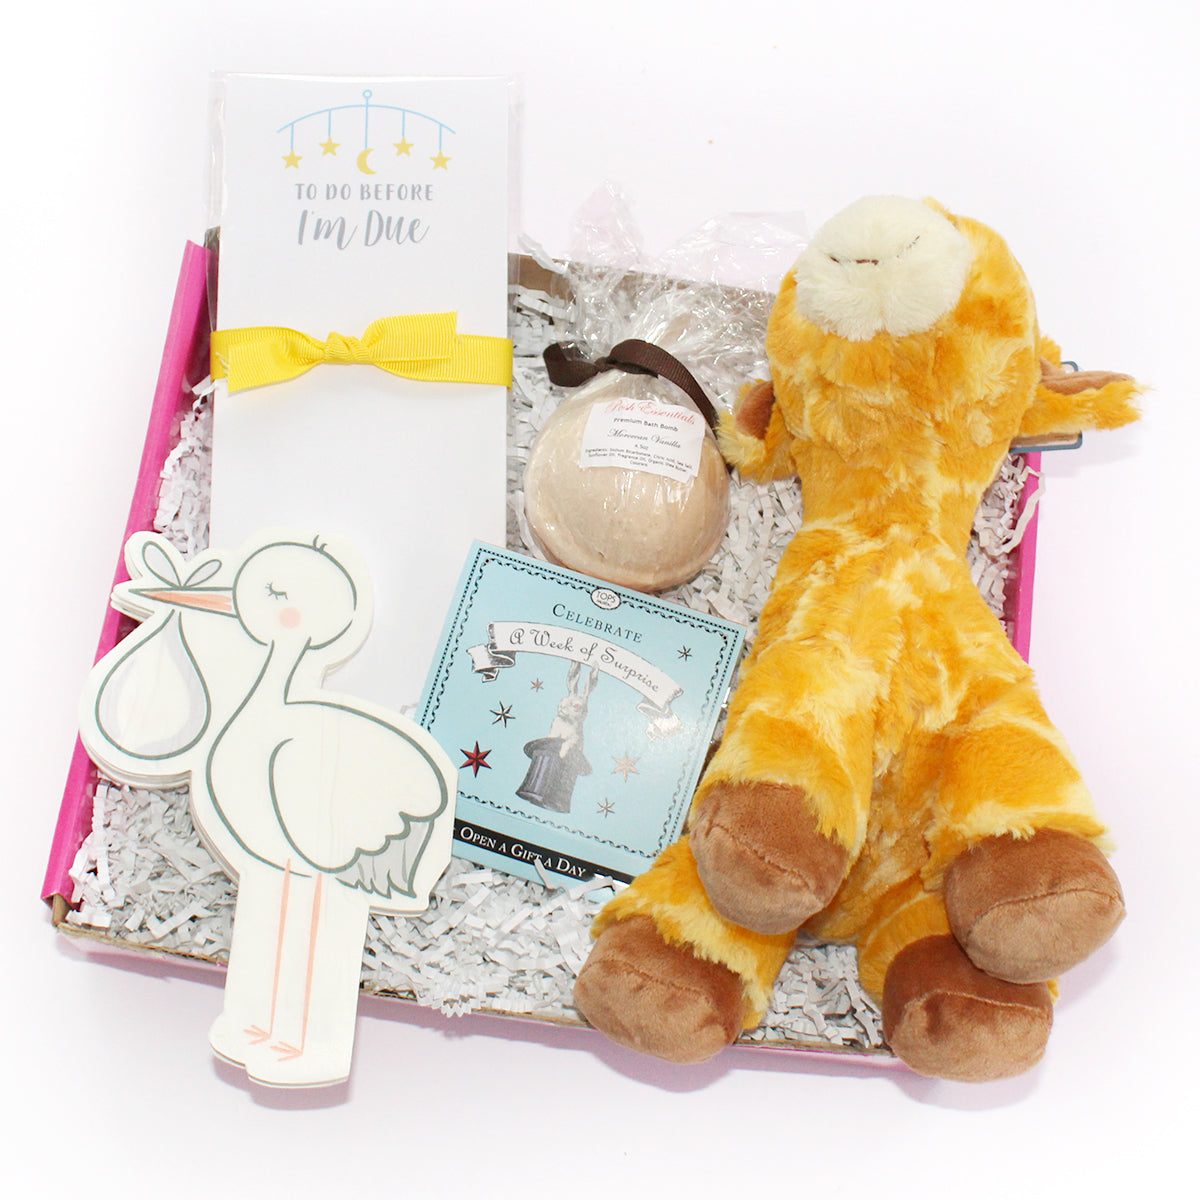 the new mommy to be includes stork napkins, giraffe, notepad, bath bomb, and surprises